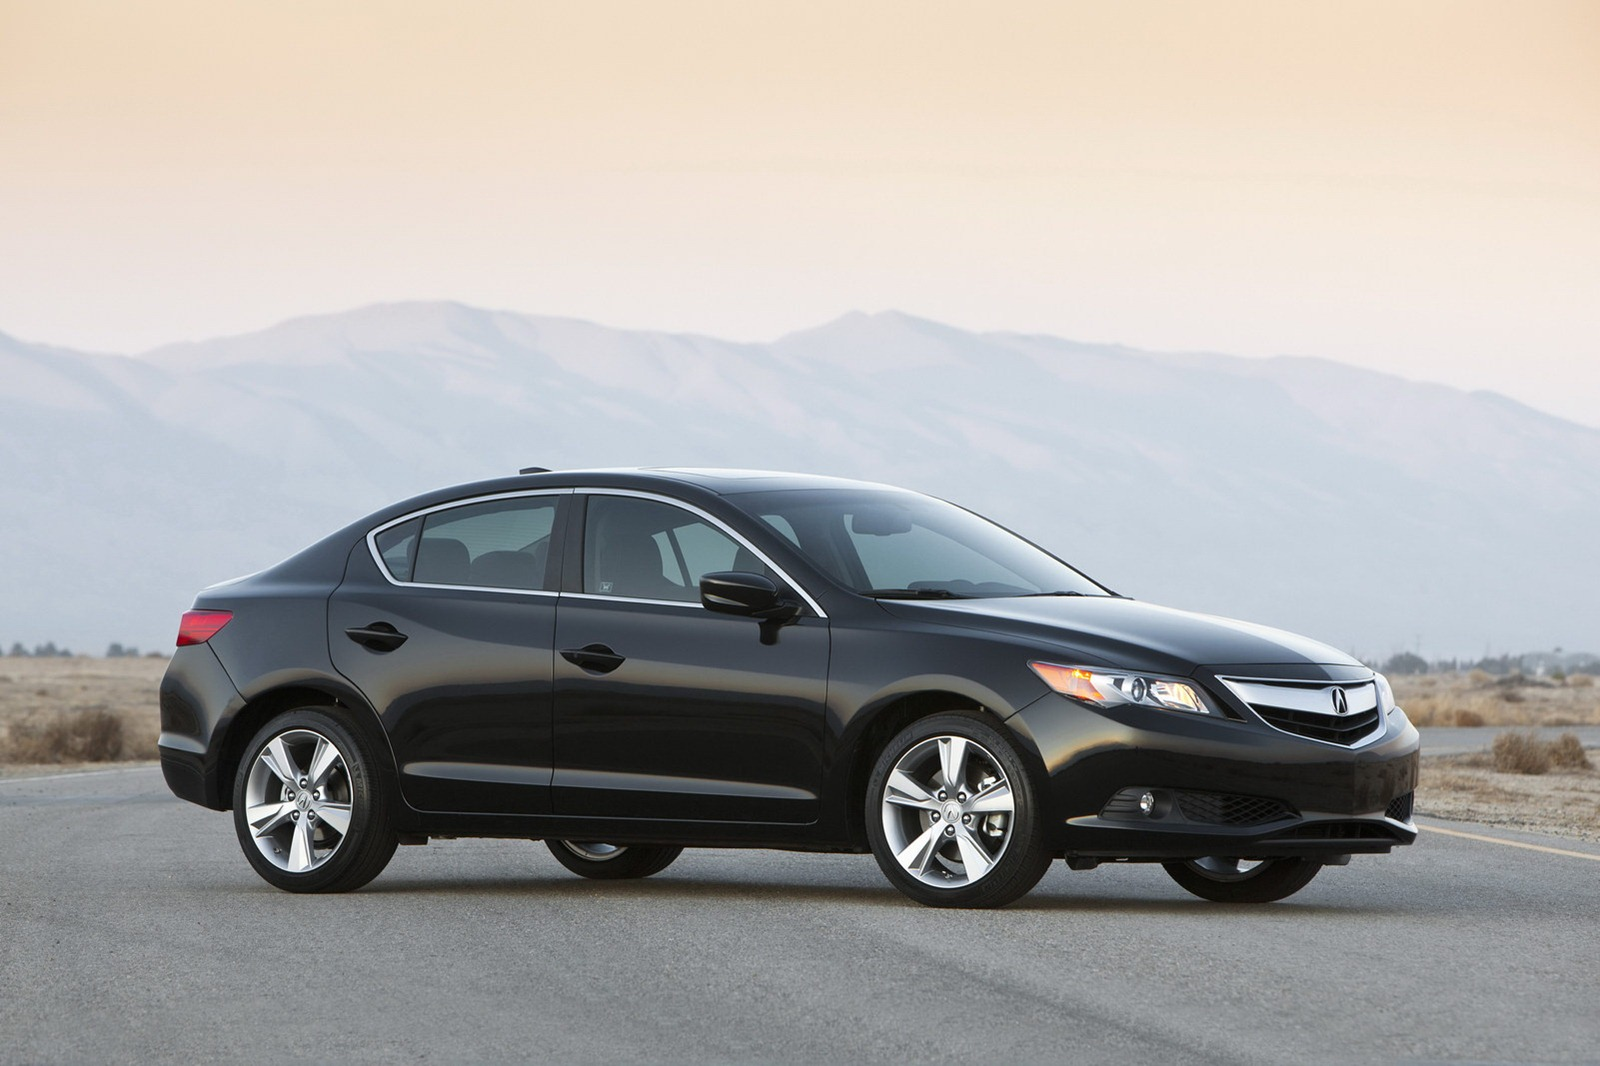 2013 Acura ILX Sedan 3 Official photos of 2013 Acura ILX Sedan and RDX Crossover released